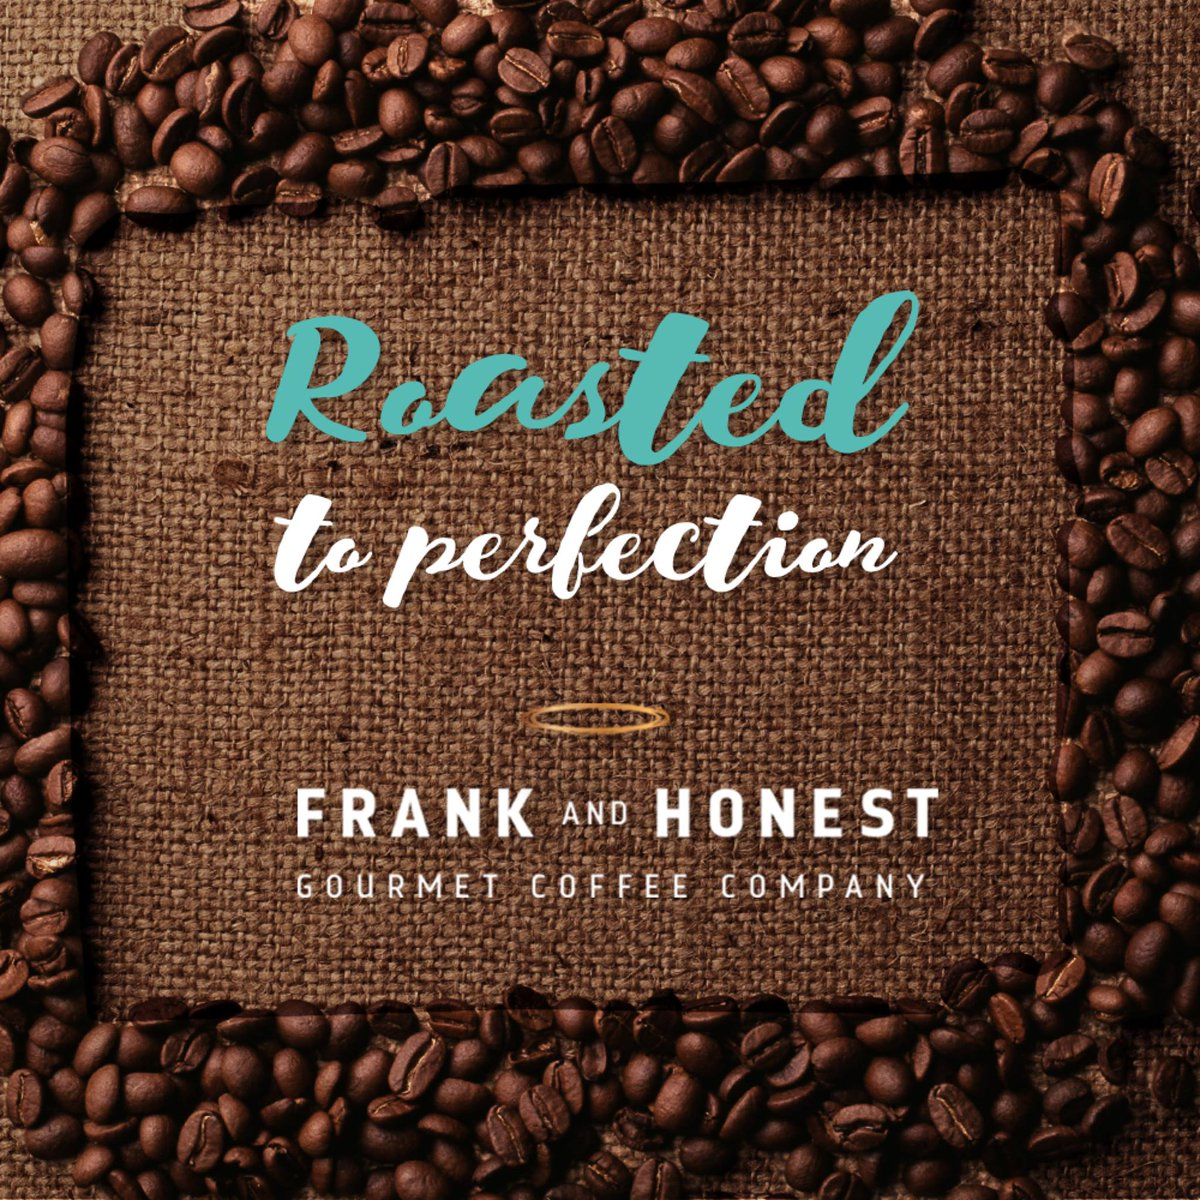 Be More Frank & Honest! Try Our New Coffee... https://t.co/7x4fVppPM1